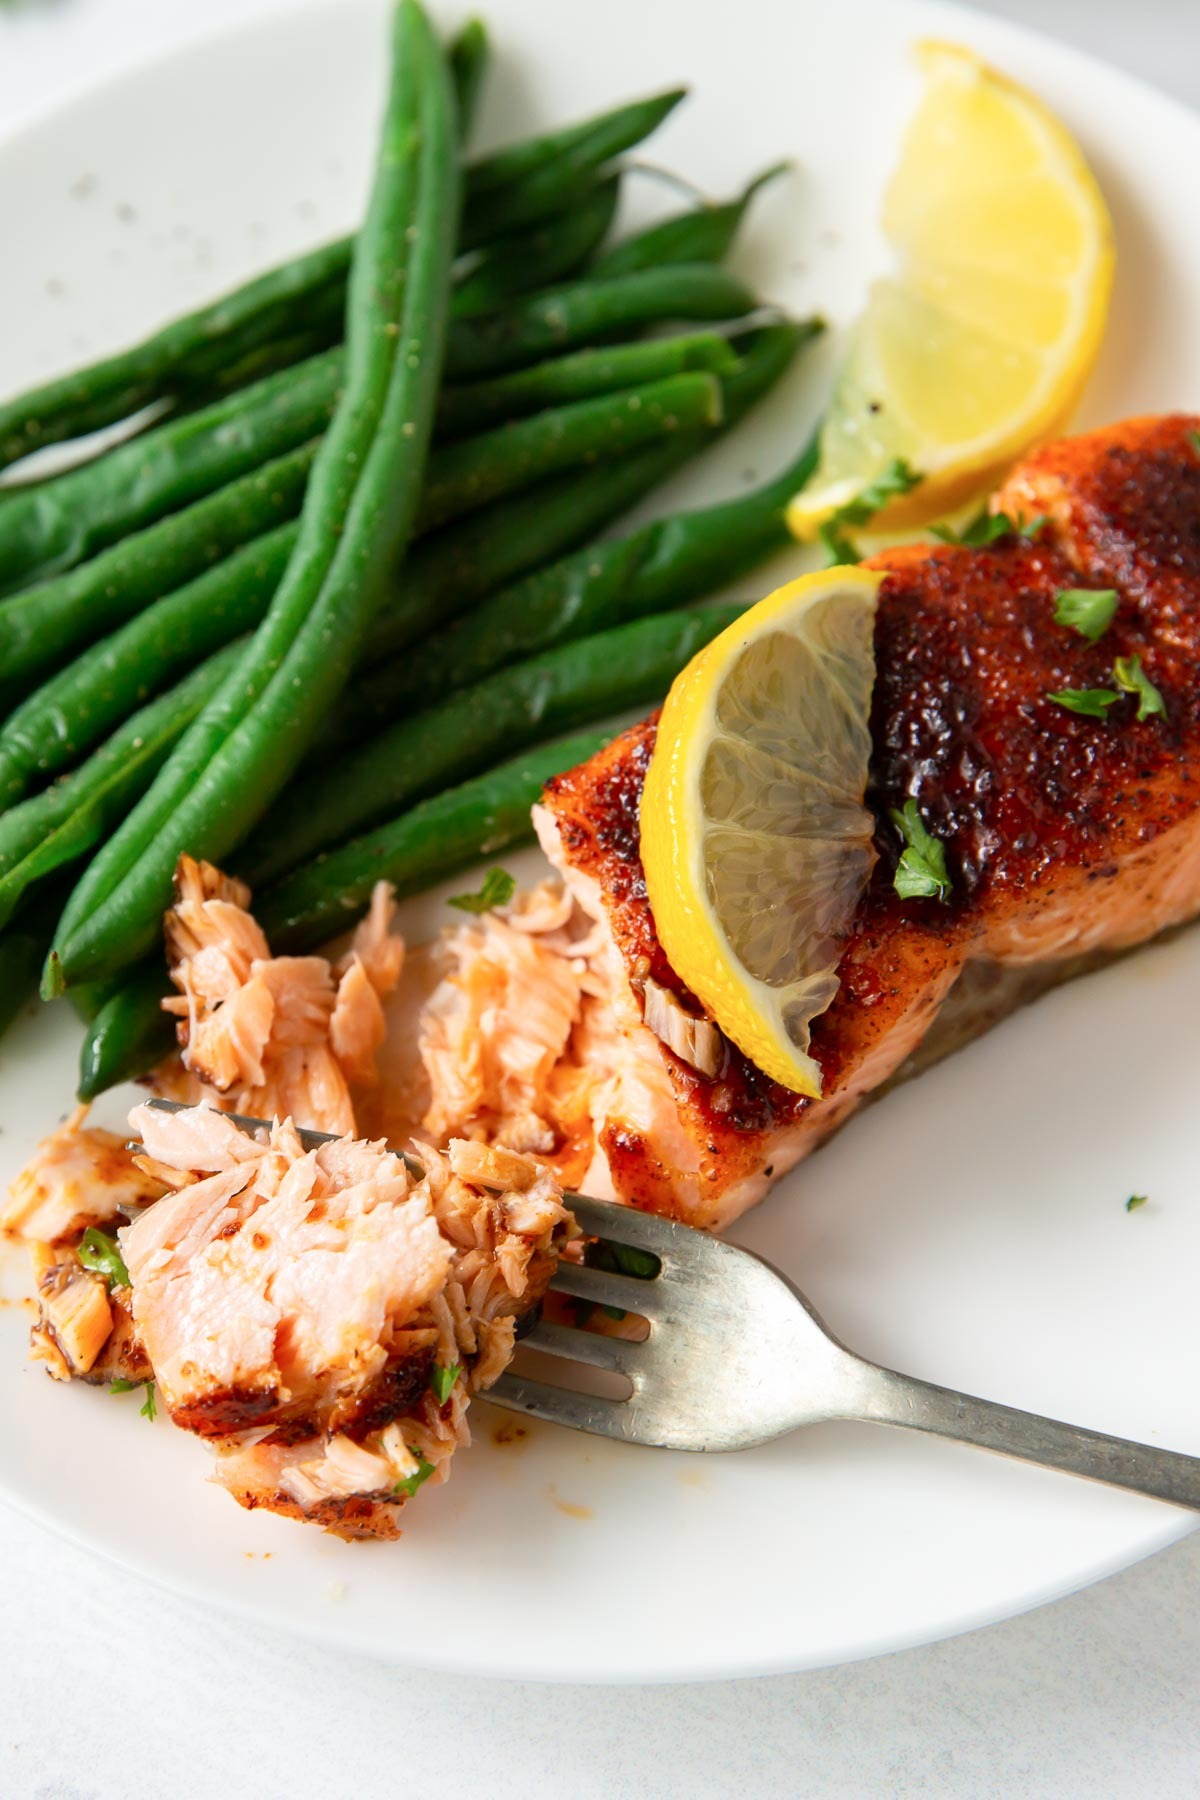 air fryer salmon fillet flaked with a fork